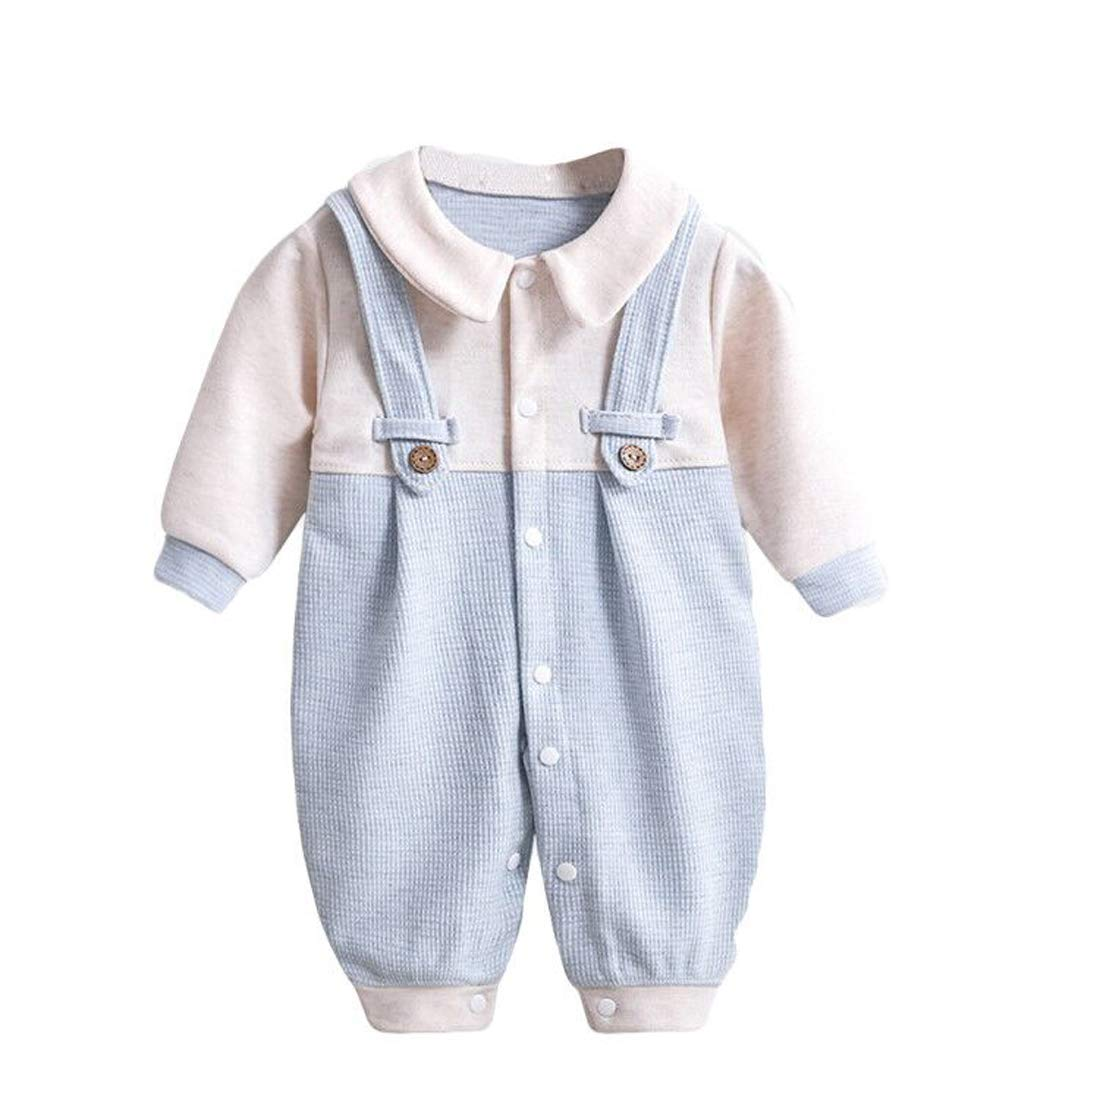 Gaorui Newborn Baby Strap Jumpsuit Outfit - Unisex Cute Infant Boy Girl Long Sleeve Collar Cotton Rompers Baby Boy Clothes